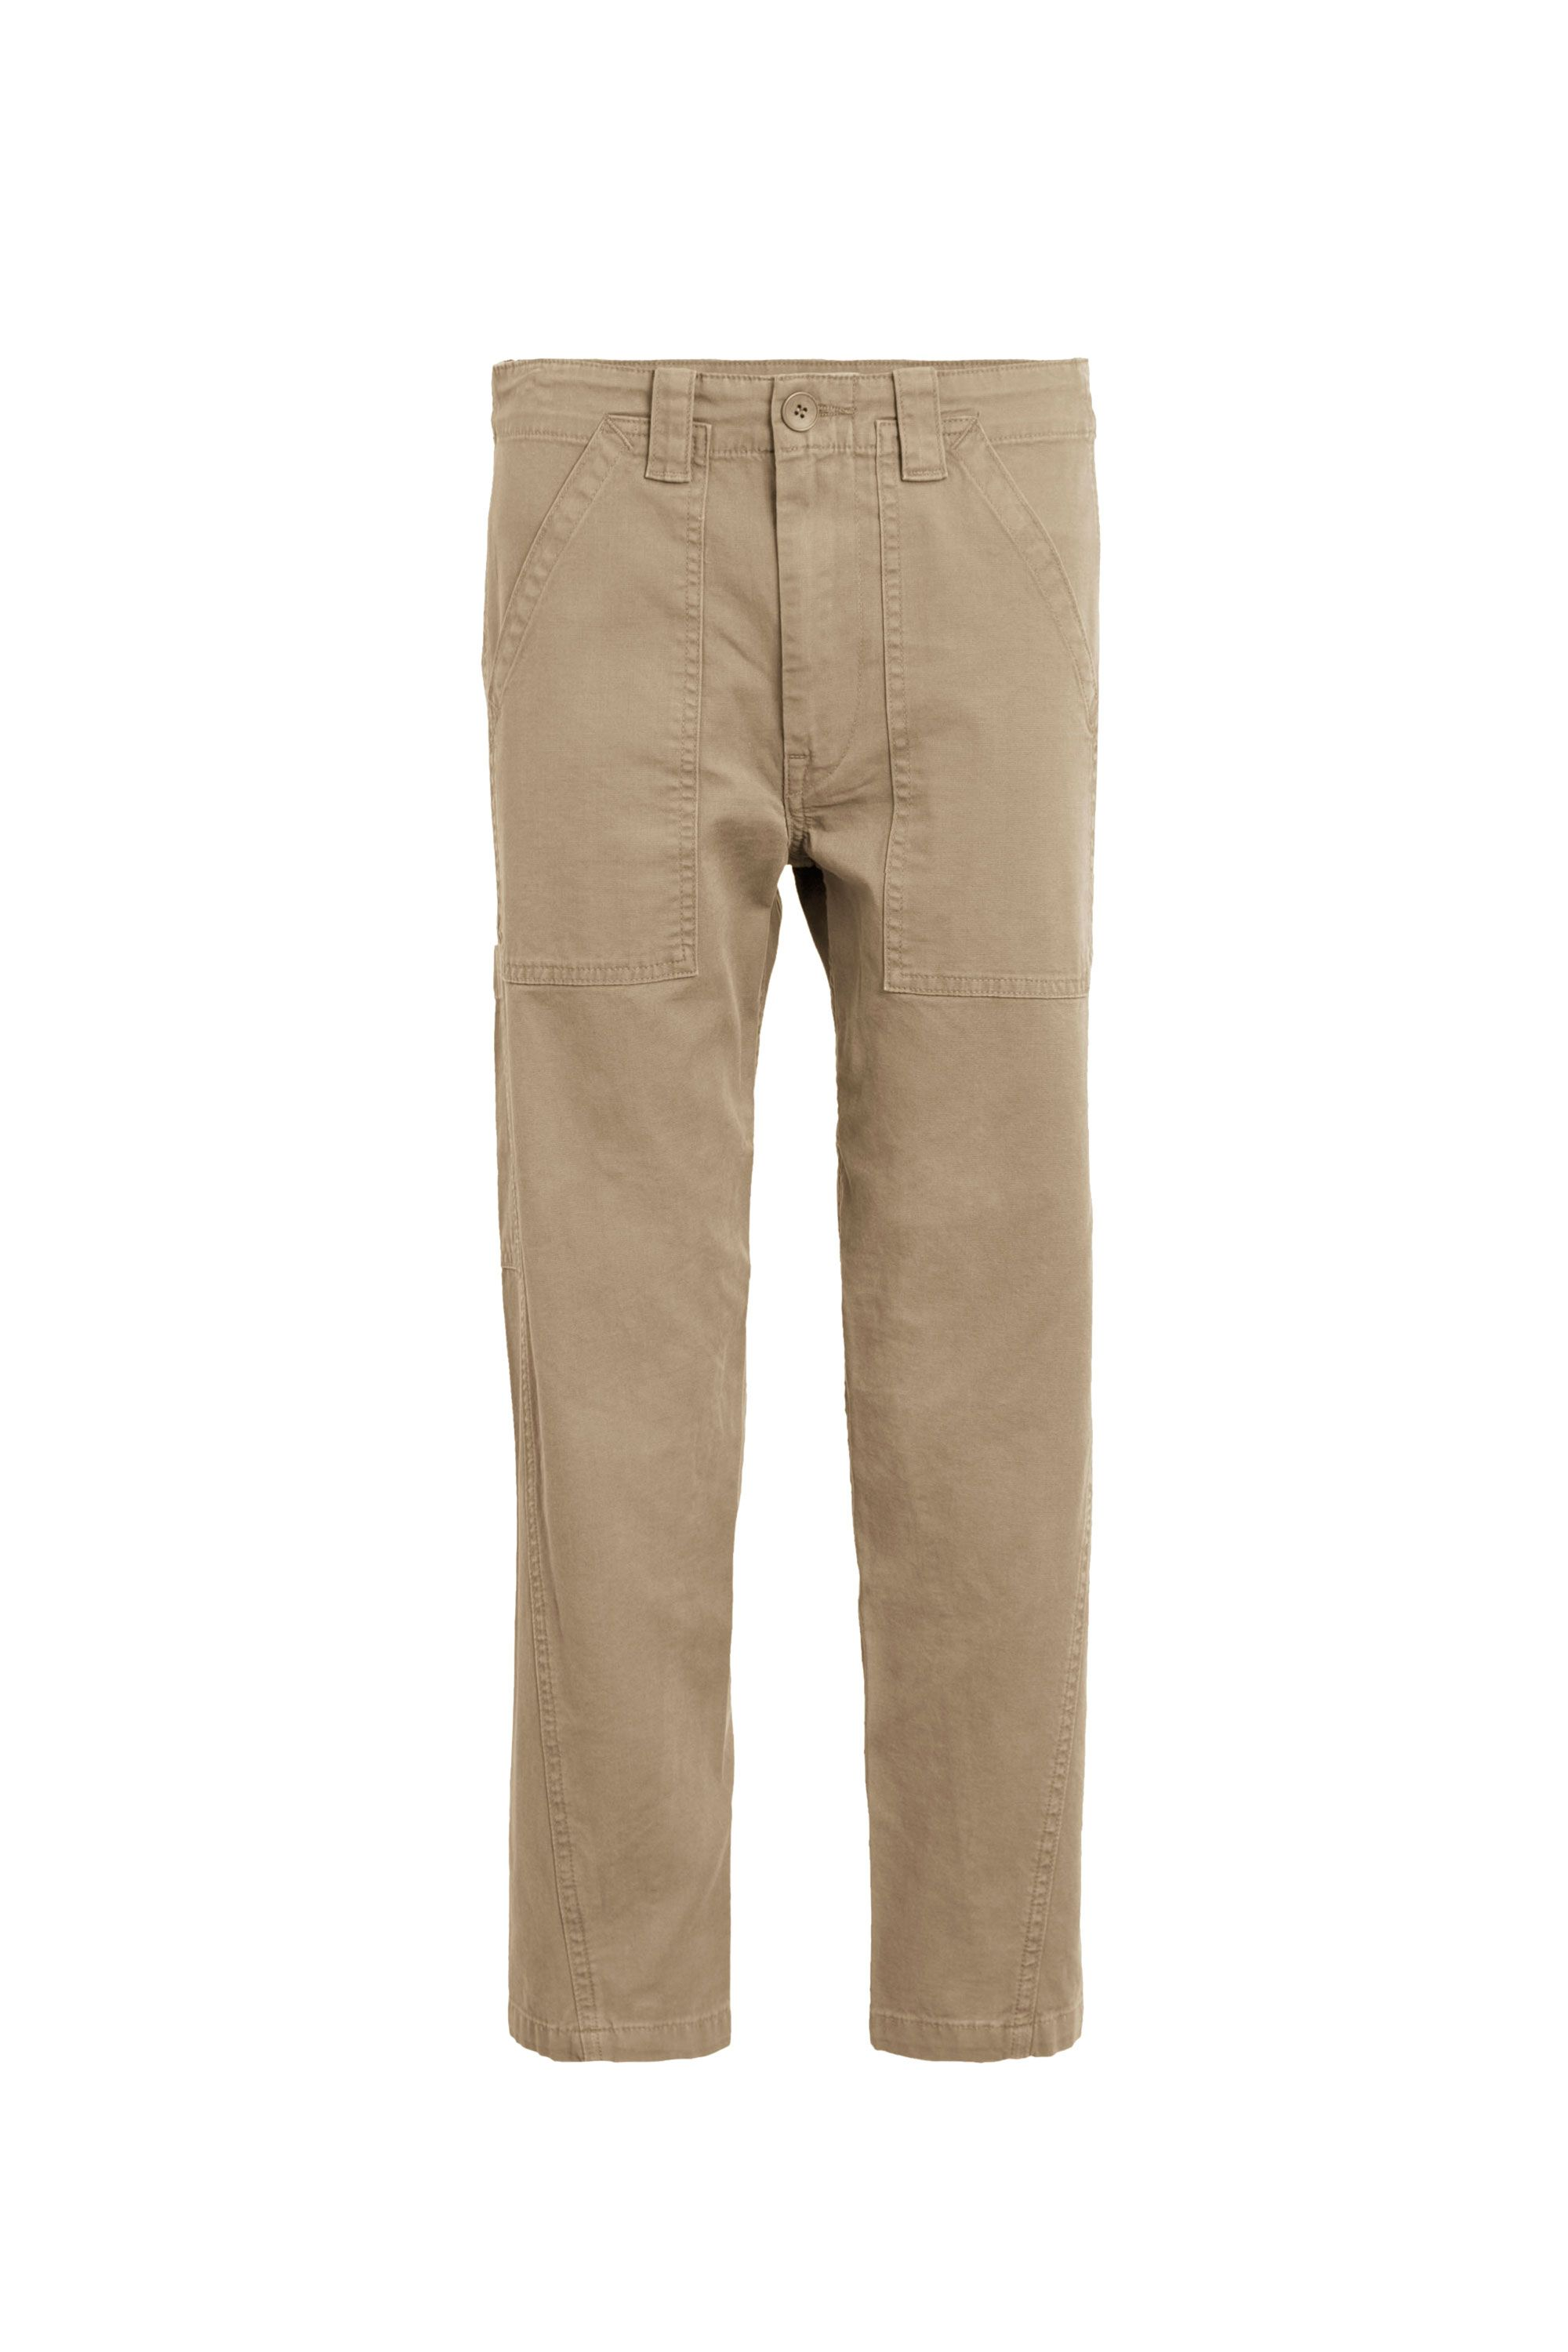 "<p>It's time to reconsider khakis—these are nothing like the cargos you wore in middle school. </p><p><em data-redactor-tag=""em"">Vince military pants, $245, <a href=""http://shop.nordstrom.com/s/vince-military-pants/4549120?origin=keywordsearch-personalizedsort&fashioncolor=OLIVE"" target=""_blank"" data-tracking-id=""recirc-text-link"">nordstrom.com</a></em><br></p>"